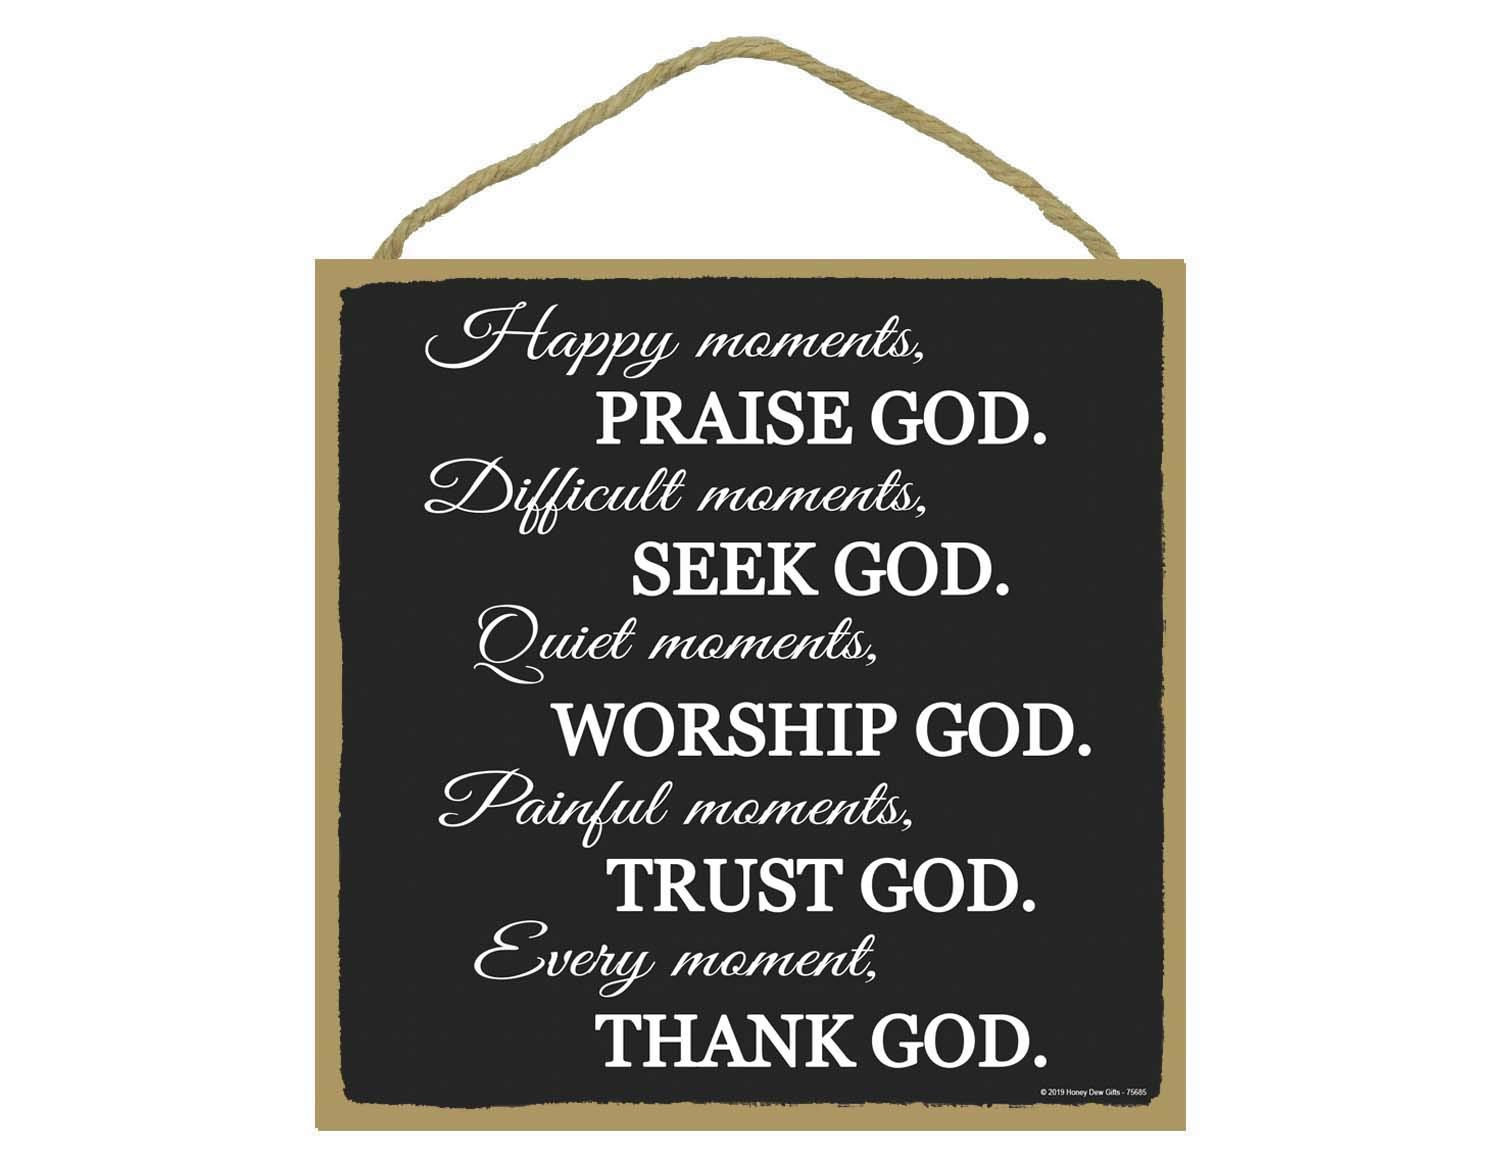 Honey Dew Gifts Christian Wall Decor, Praise, Seek, Worship, Trust, Thank God 10 inch by 10 inch Hanging Wood Sign, Home…